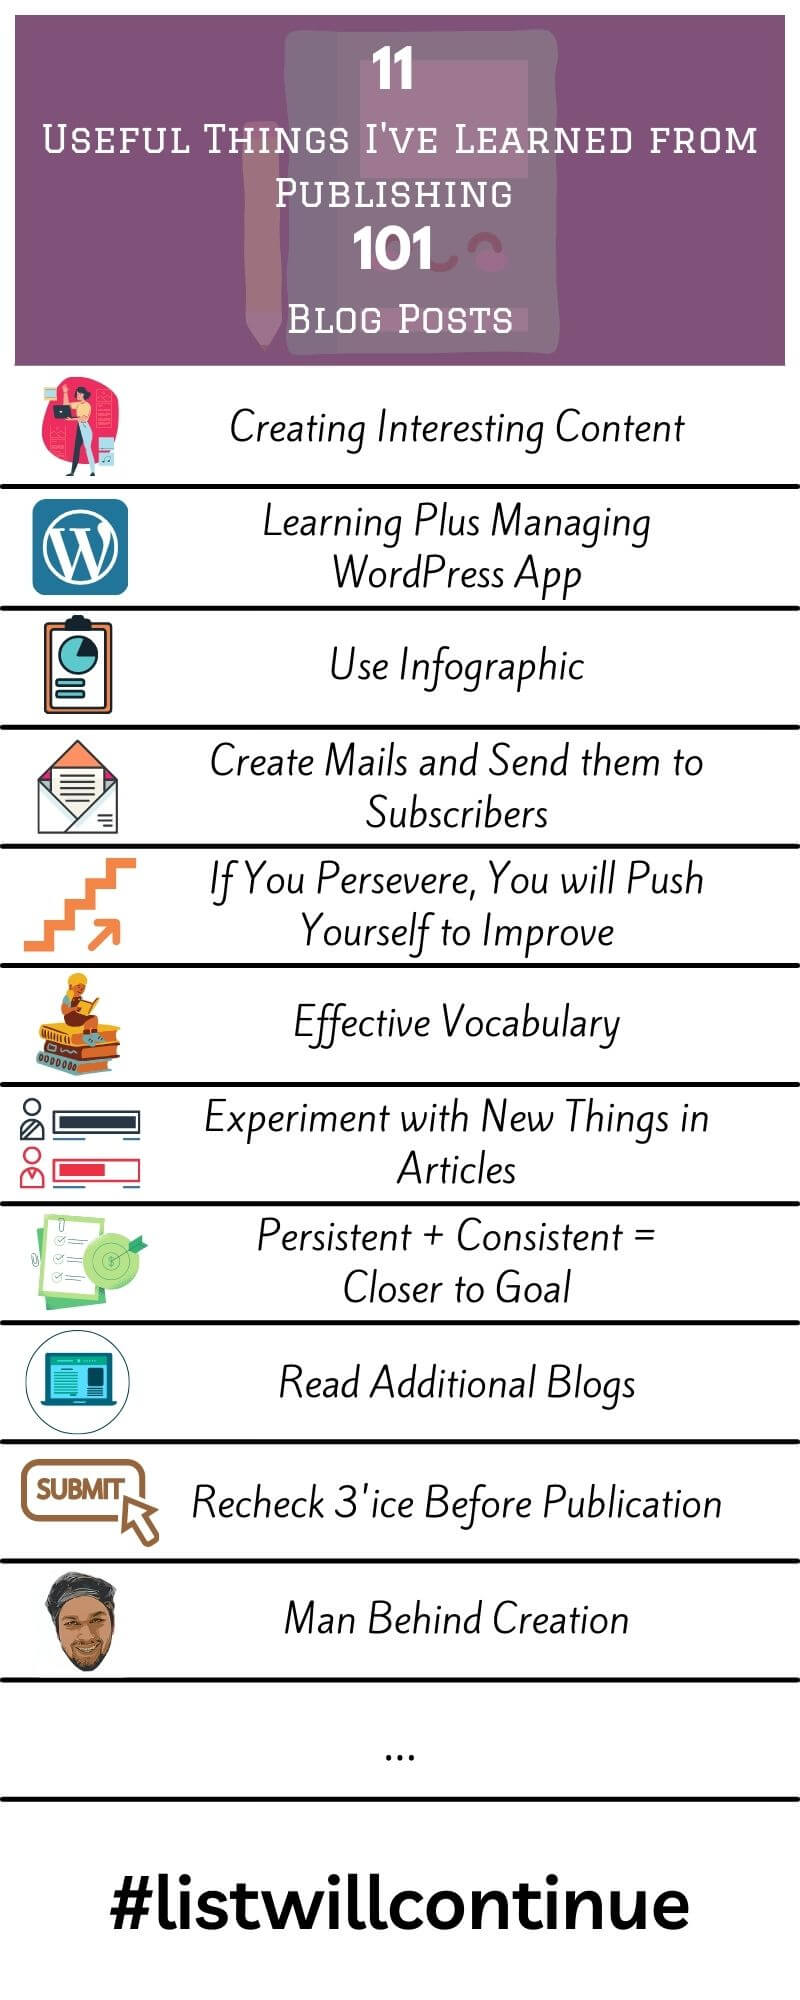 I strive to explain the lengthy blog posts with the help of Infographics for better understanding.